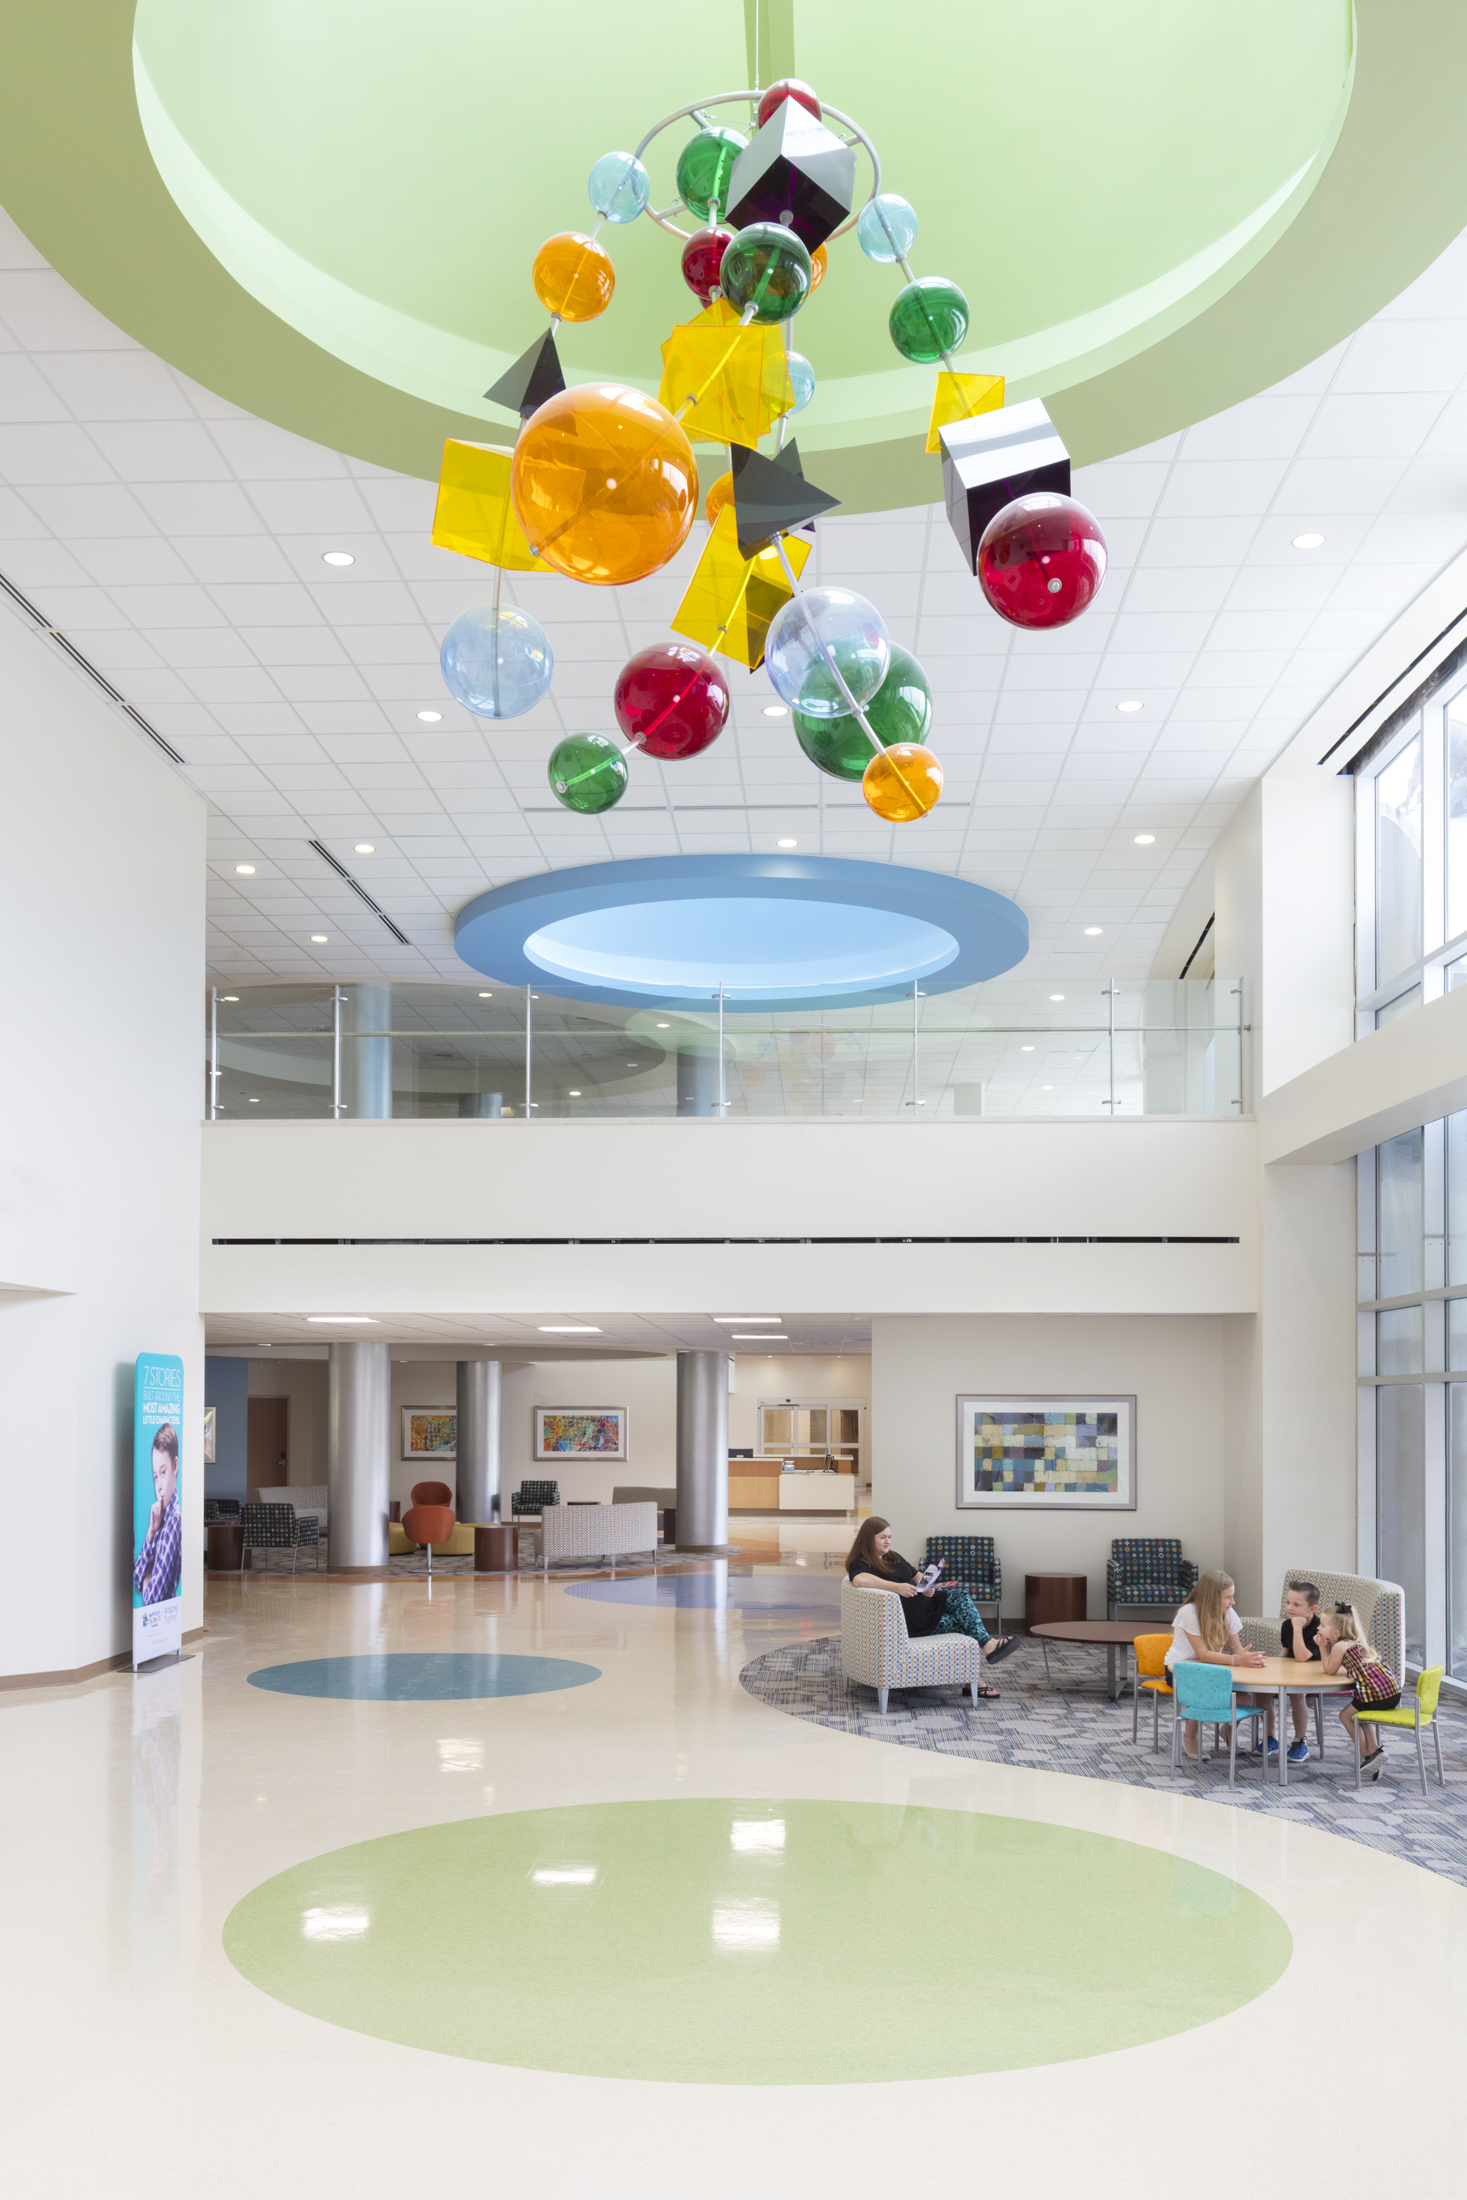 Methodist Children's Hospital  San Antonio TX  ESa   Back to Portfolios